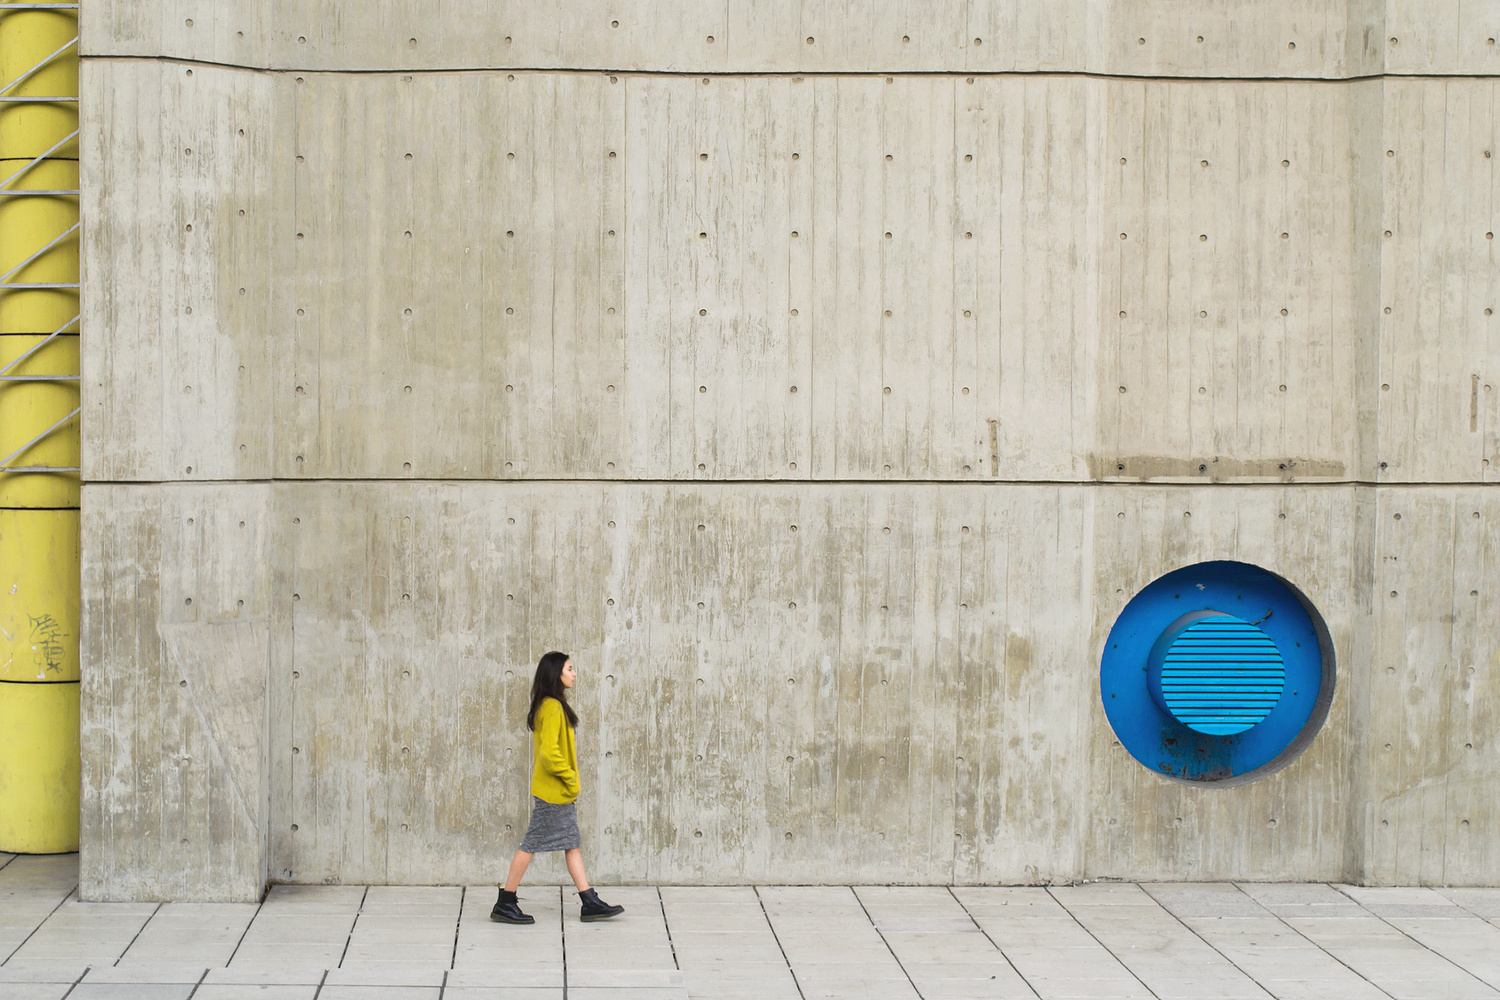 From yellow to blue by Alessandro Vegini